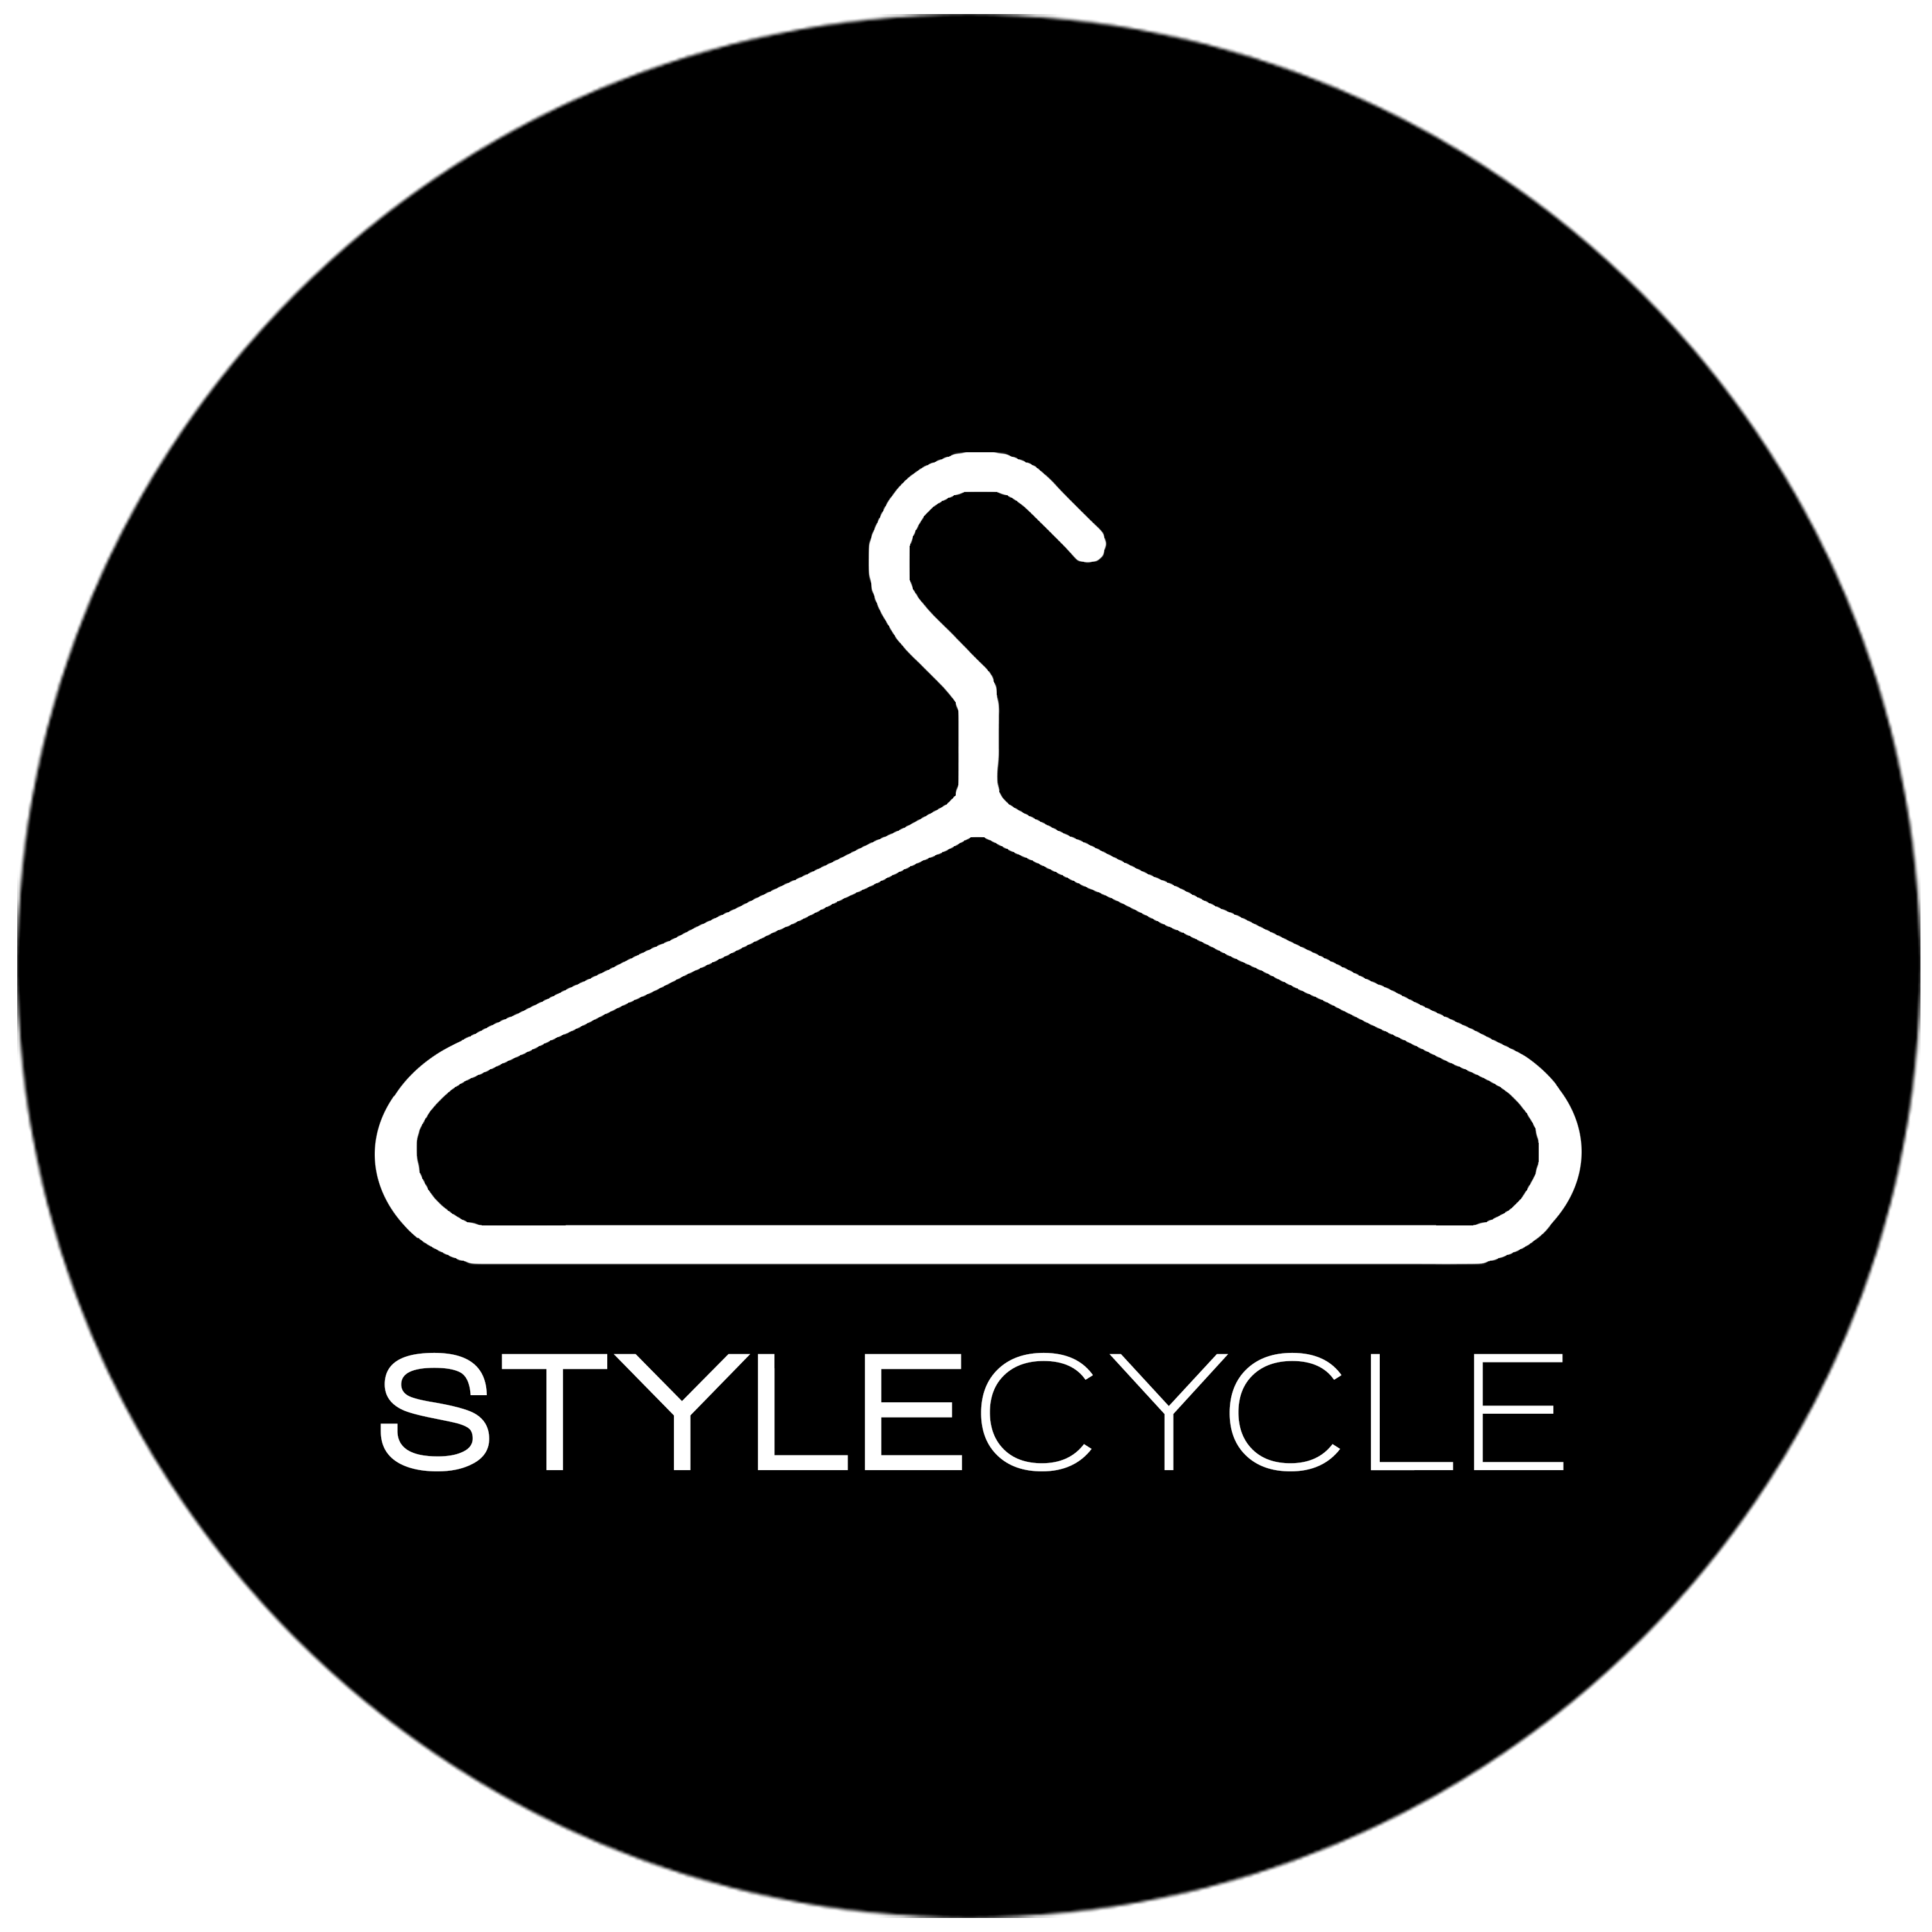 StyleCycle